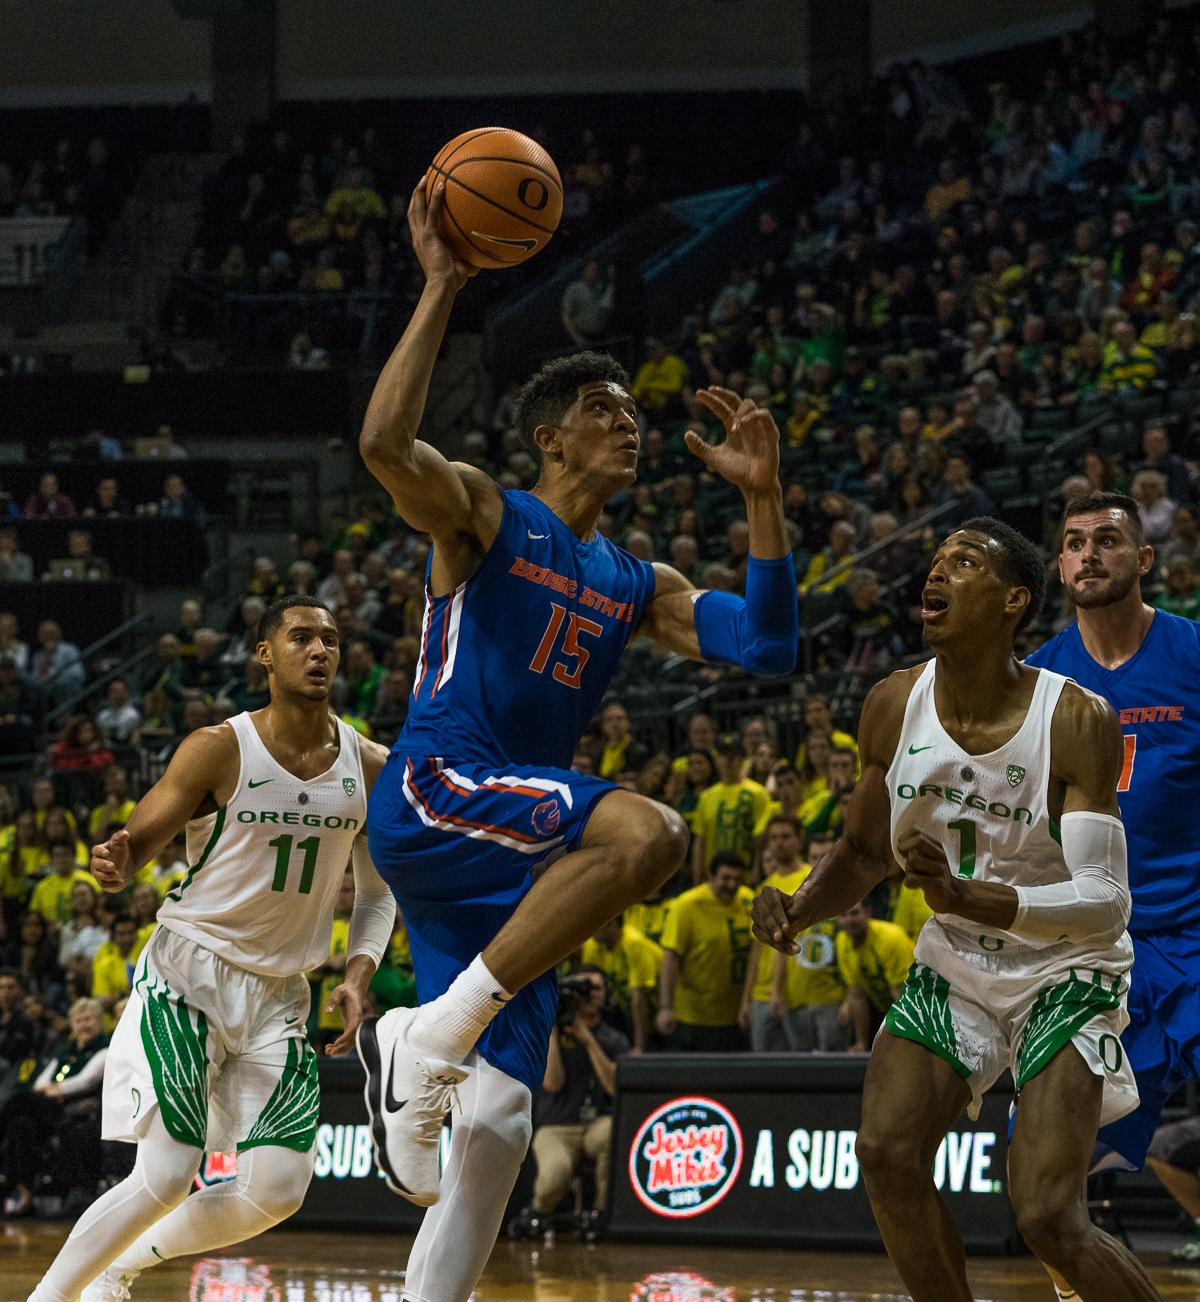 Boise State Bronco Chandler Hutchison (#15) drives to the basket before University of Oregon Ducks Kenny Wooten (#1) and Keith Smith (#11) can stop him. The Boise State Broncos defeated the University of Oregon Ducks 73 – 70 at Matthew Knight Arena in Eugene, Ore., on December 1, 2017. Photo by Kit MacAvoy, Oregon News Lab